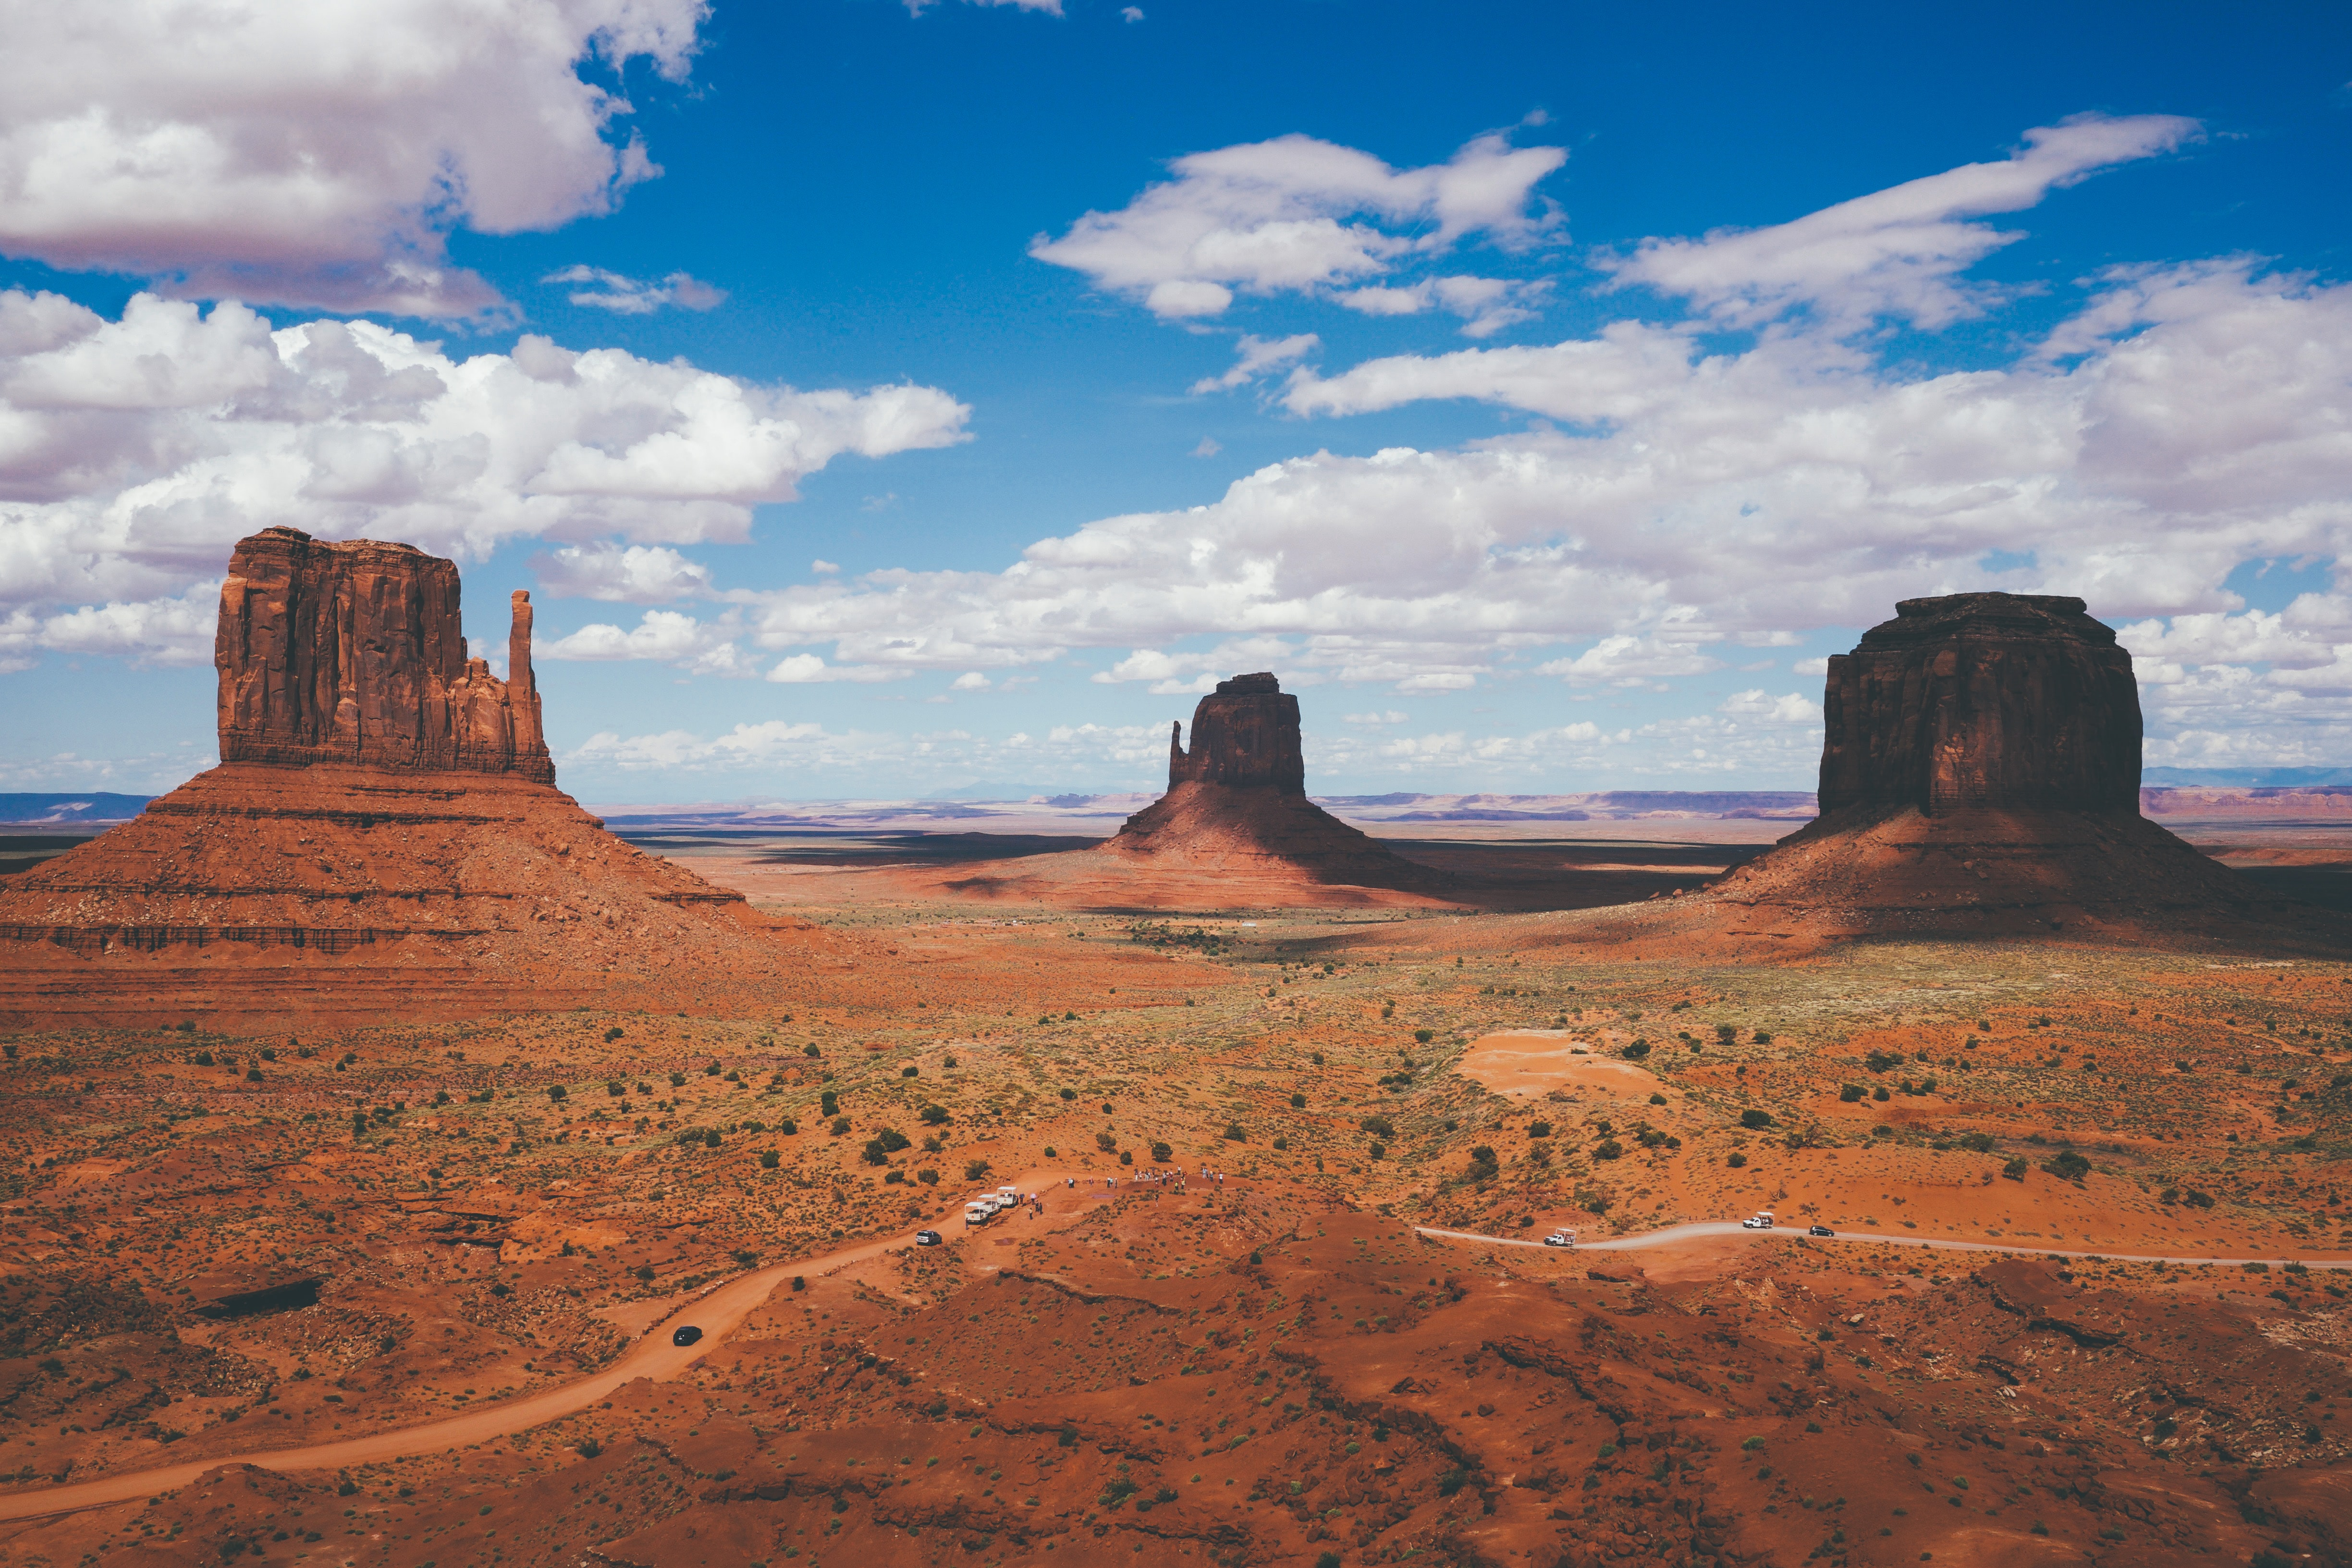 Landscape photo of rocky monuments in the desert at the Oljato-Monument Valley